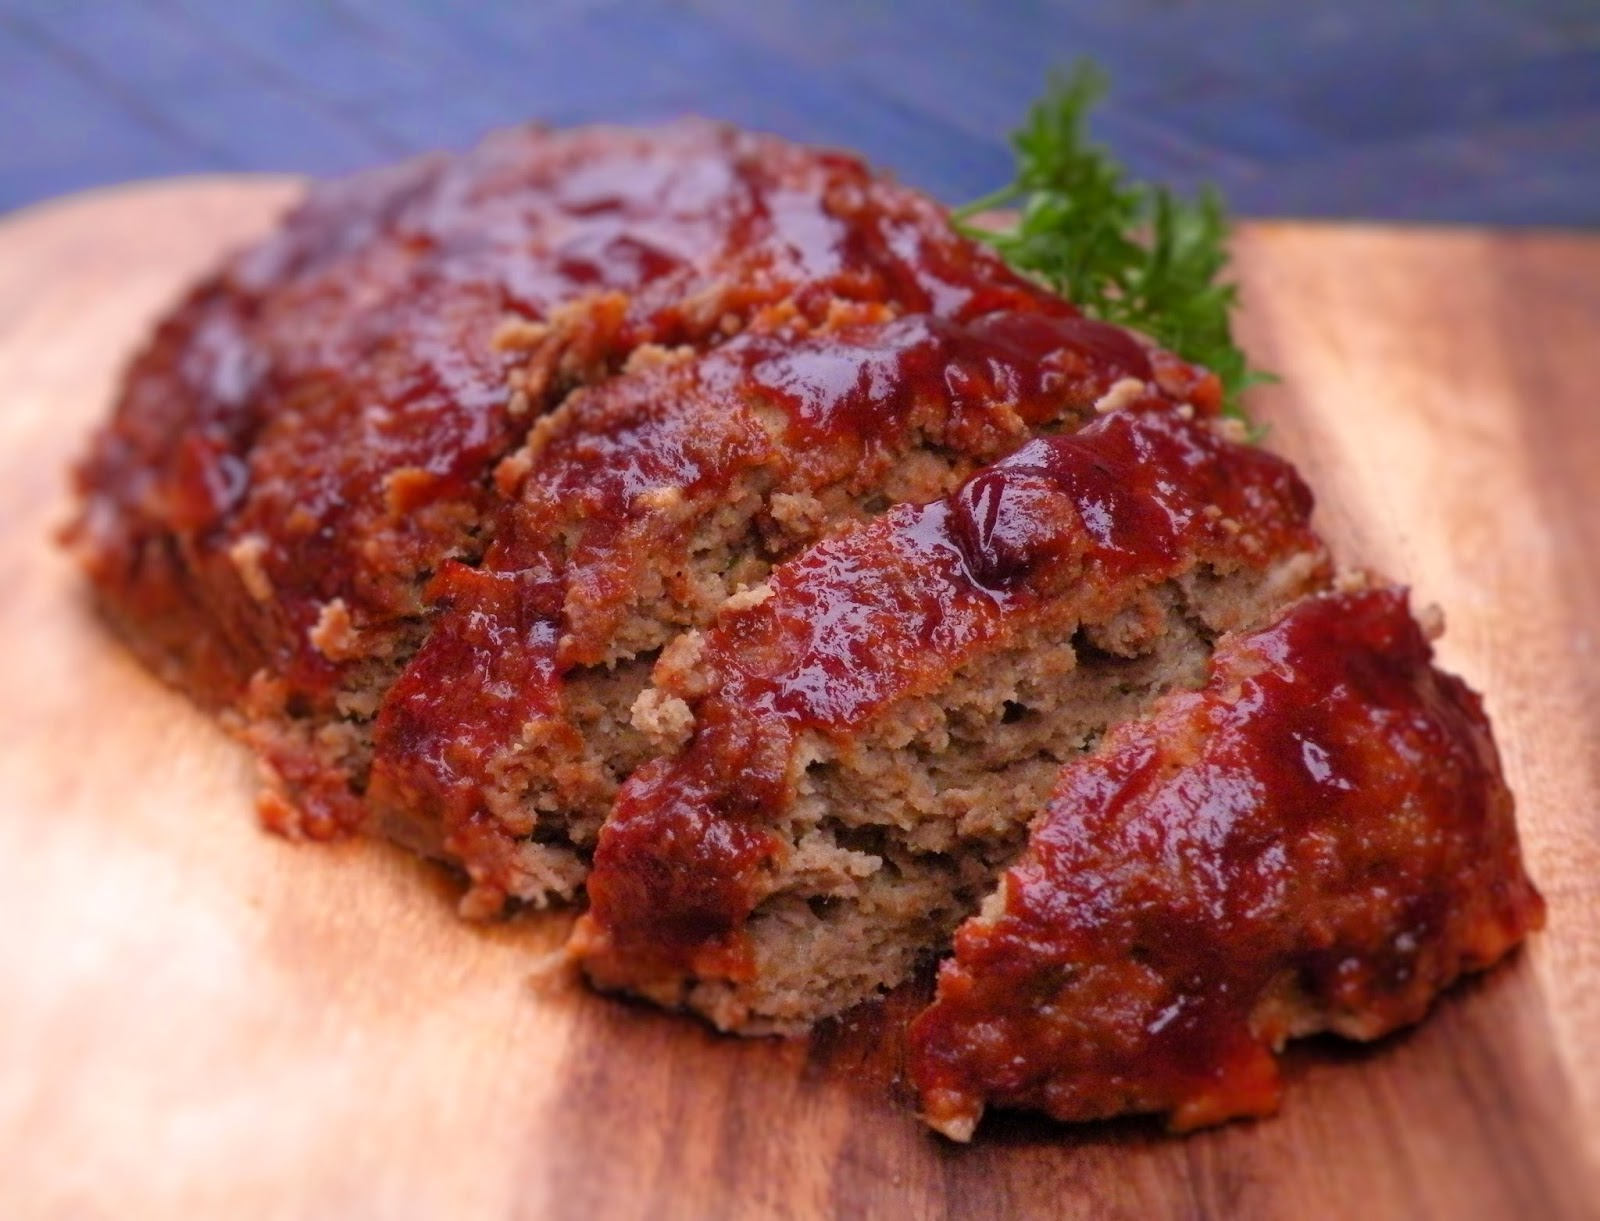 ... ago, one of my coworkers asked if I had a classic meatloaf recipe